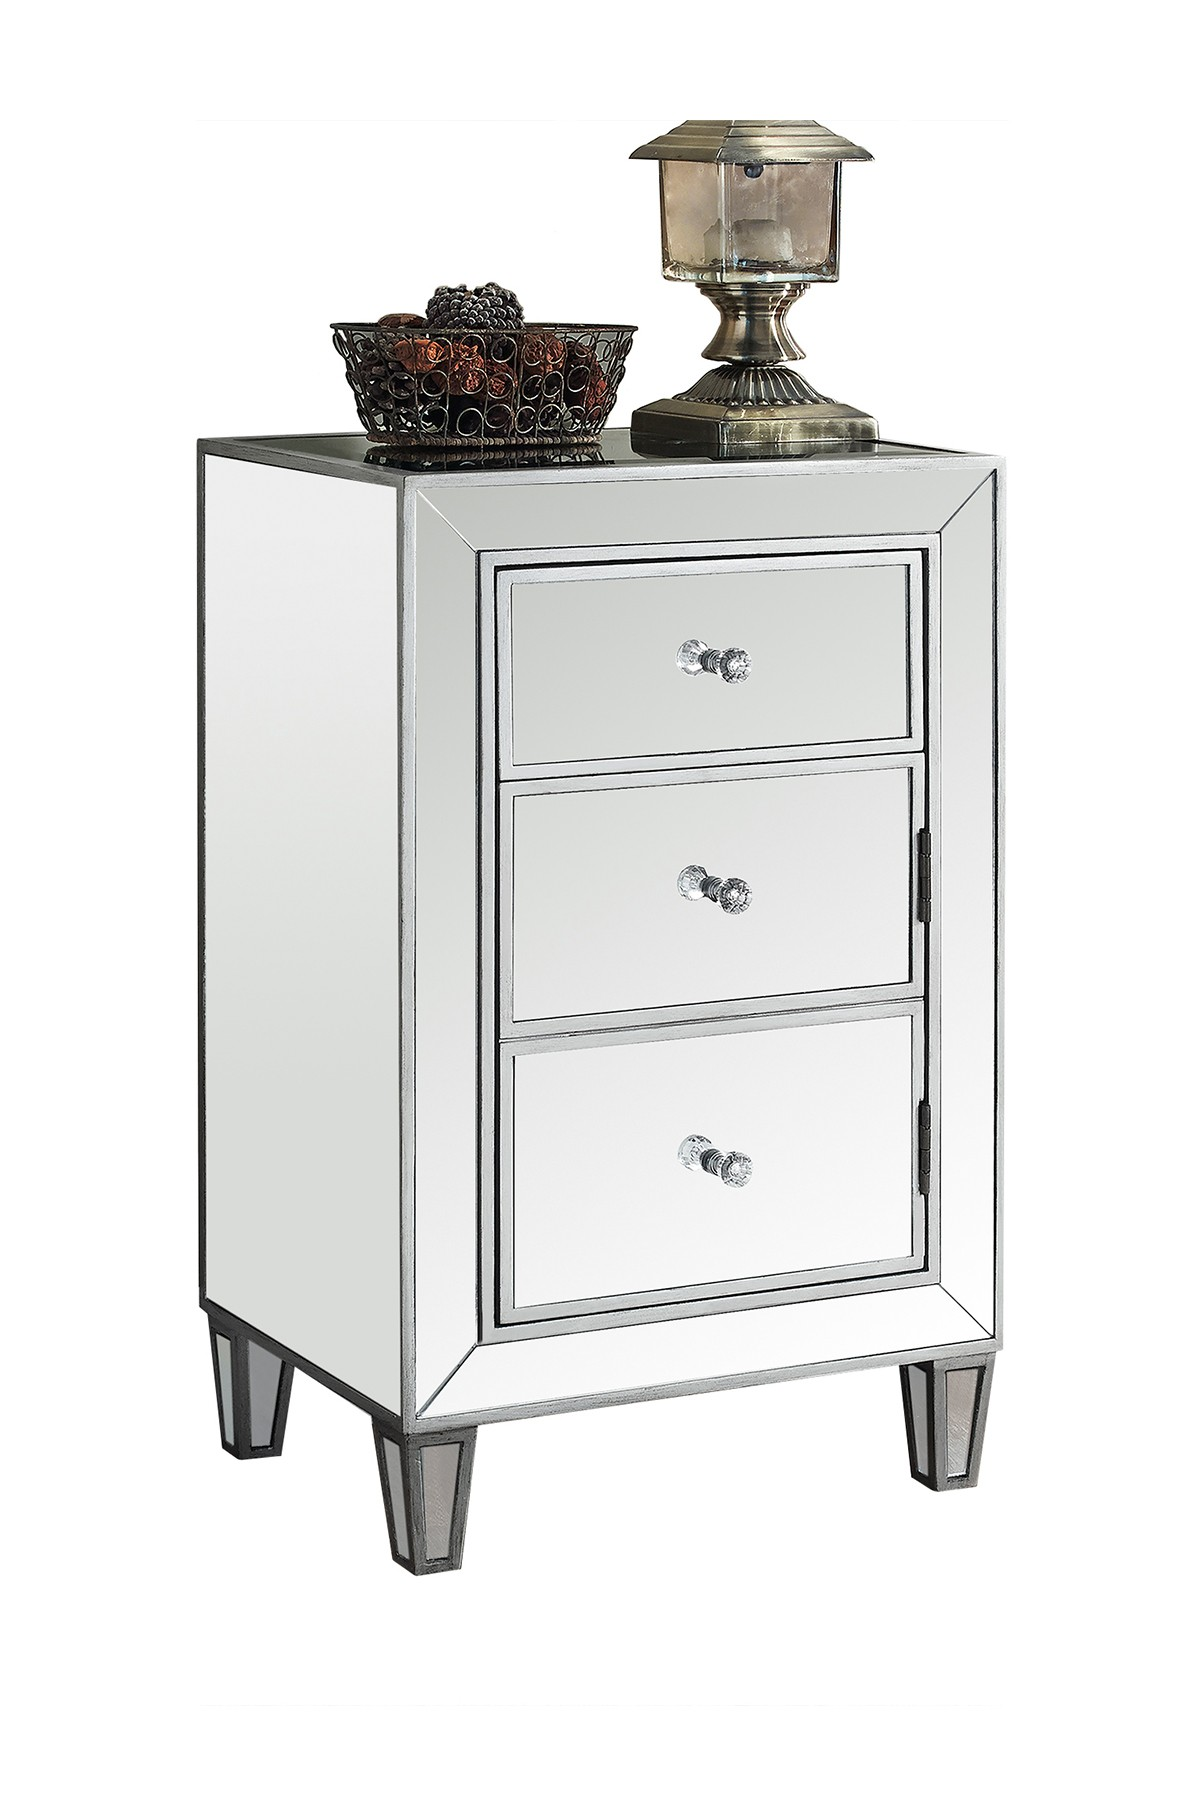 monarch specialties brushed silver mirrored accent table real marble coffee cream bedside drawers cast aluminum patio side dining set clear end wood trestle bases for granite tops